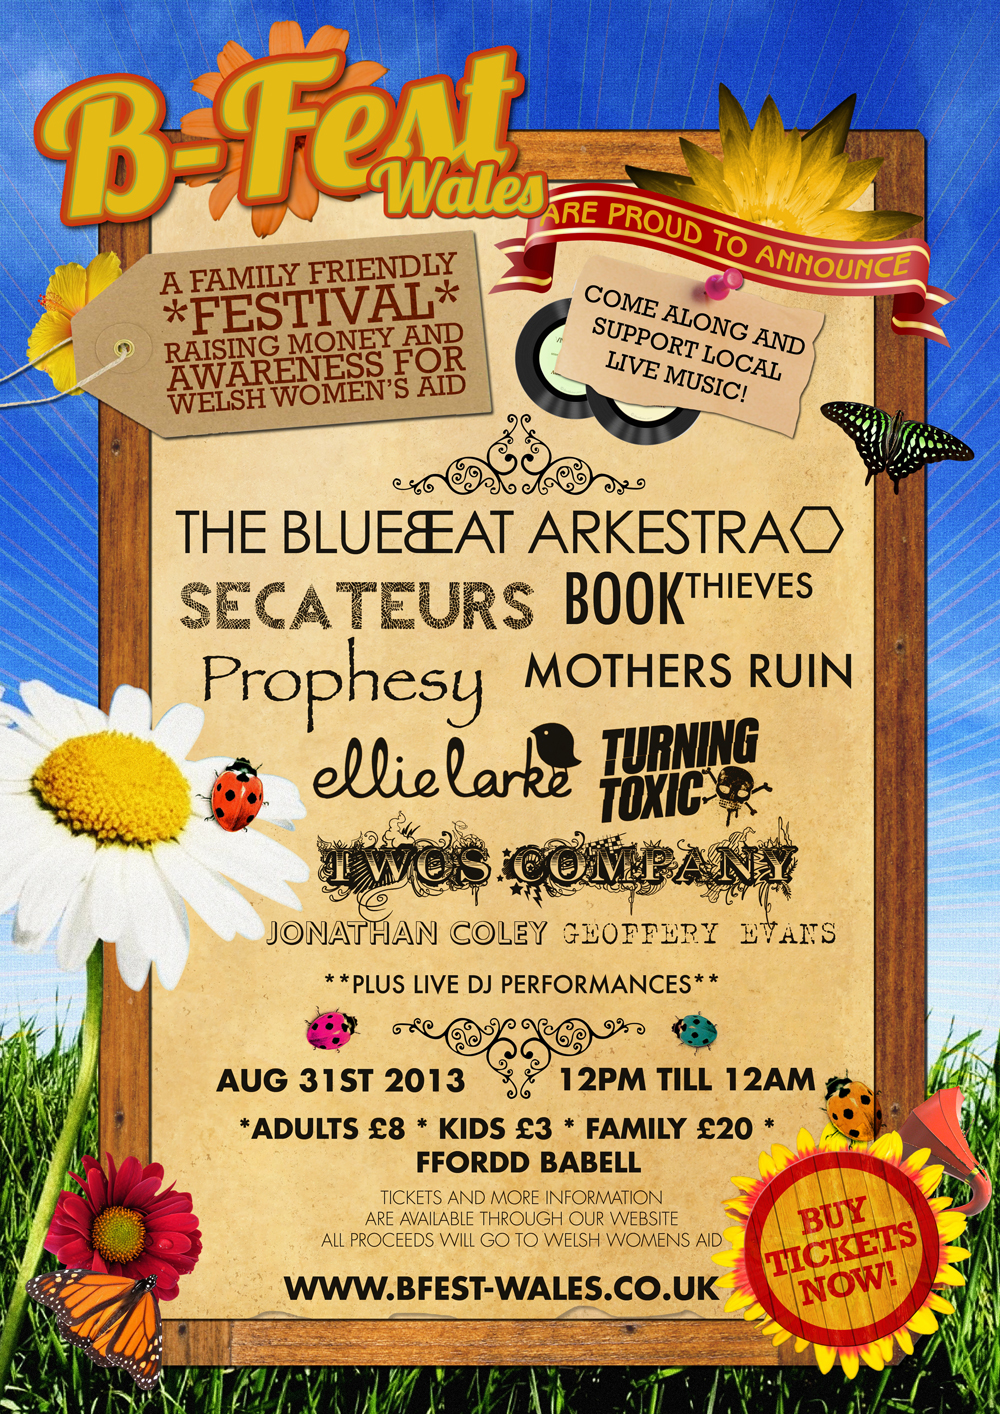 bfest wales